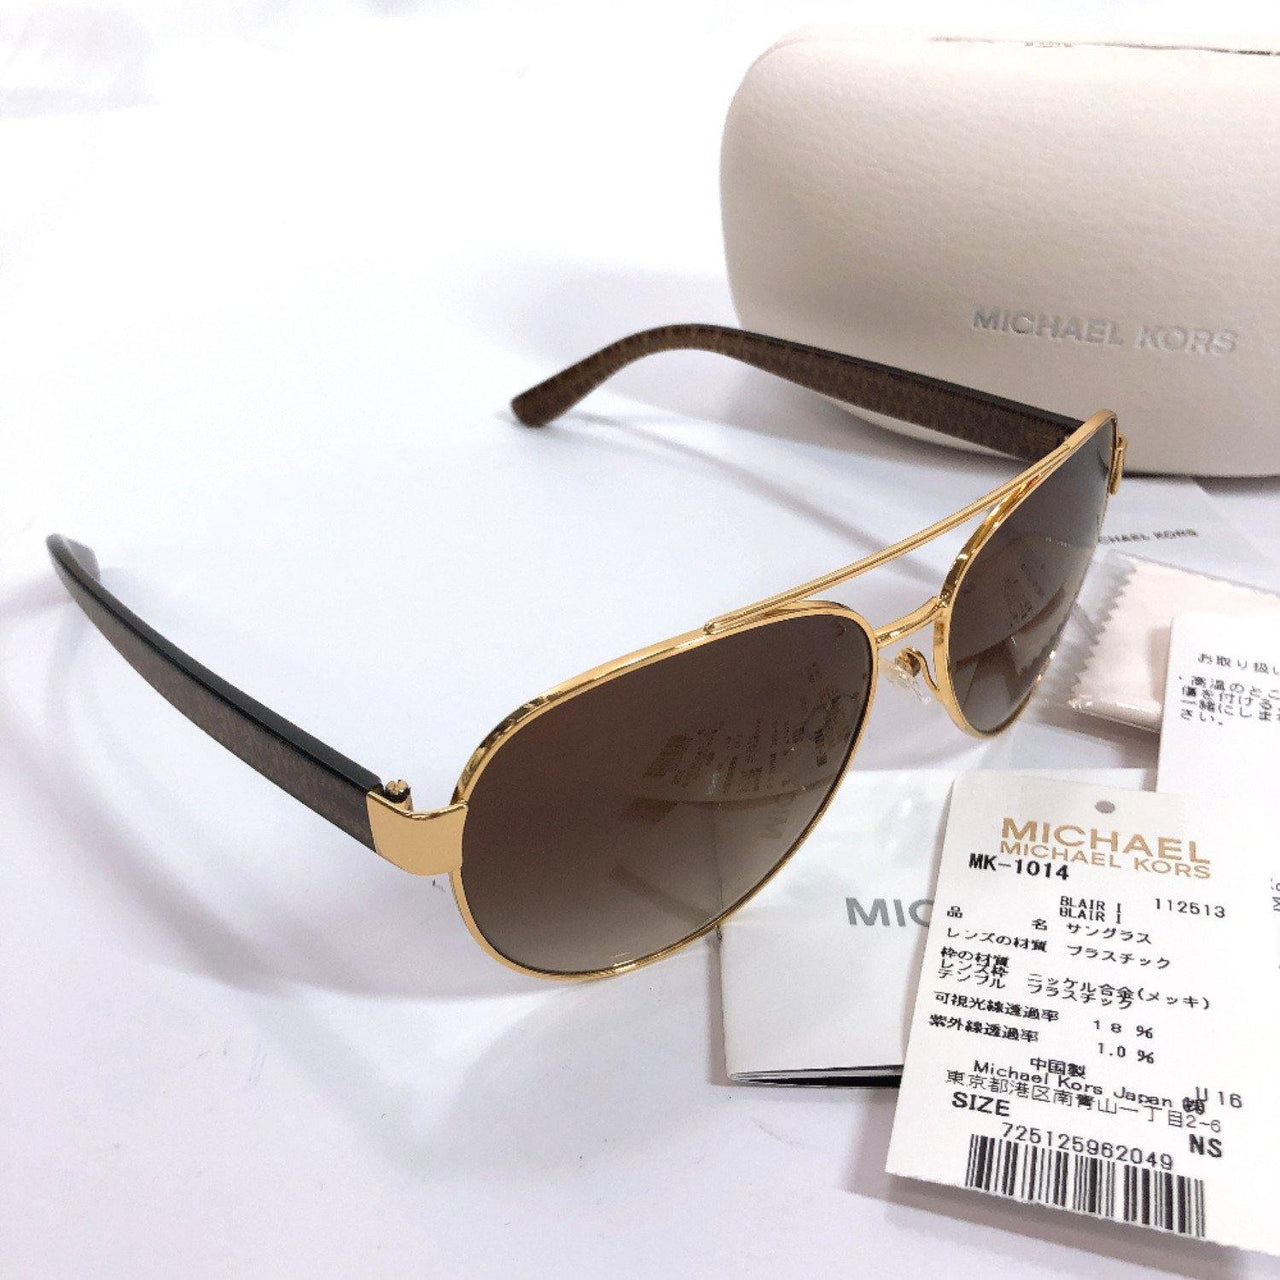 Michael Kors sunglasses MK1014(112513) BLAIR I Platstick Brown gold Women Used - JP-BRANDS.com